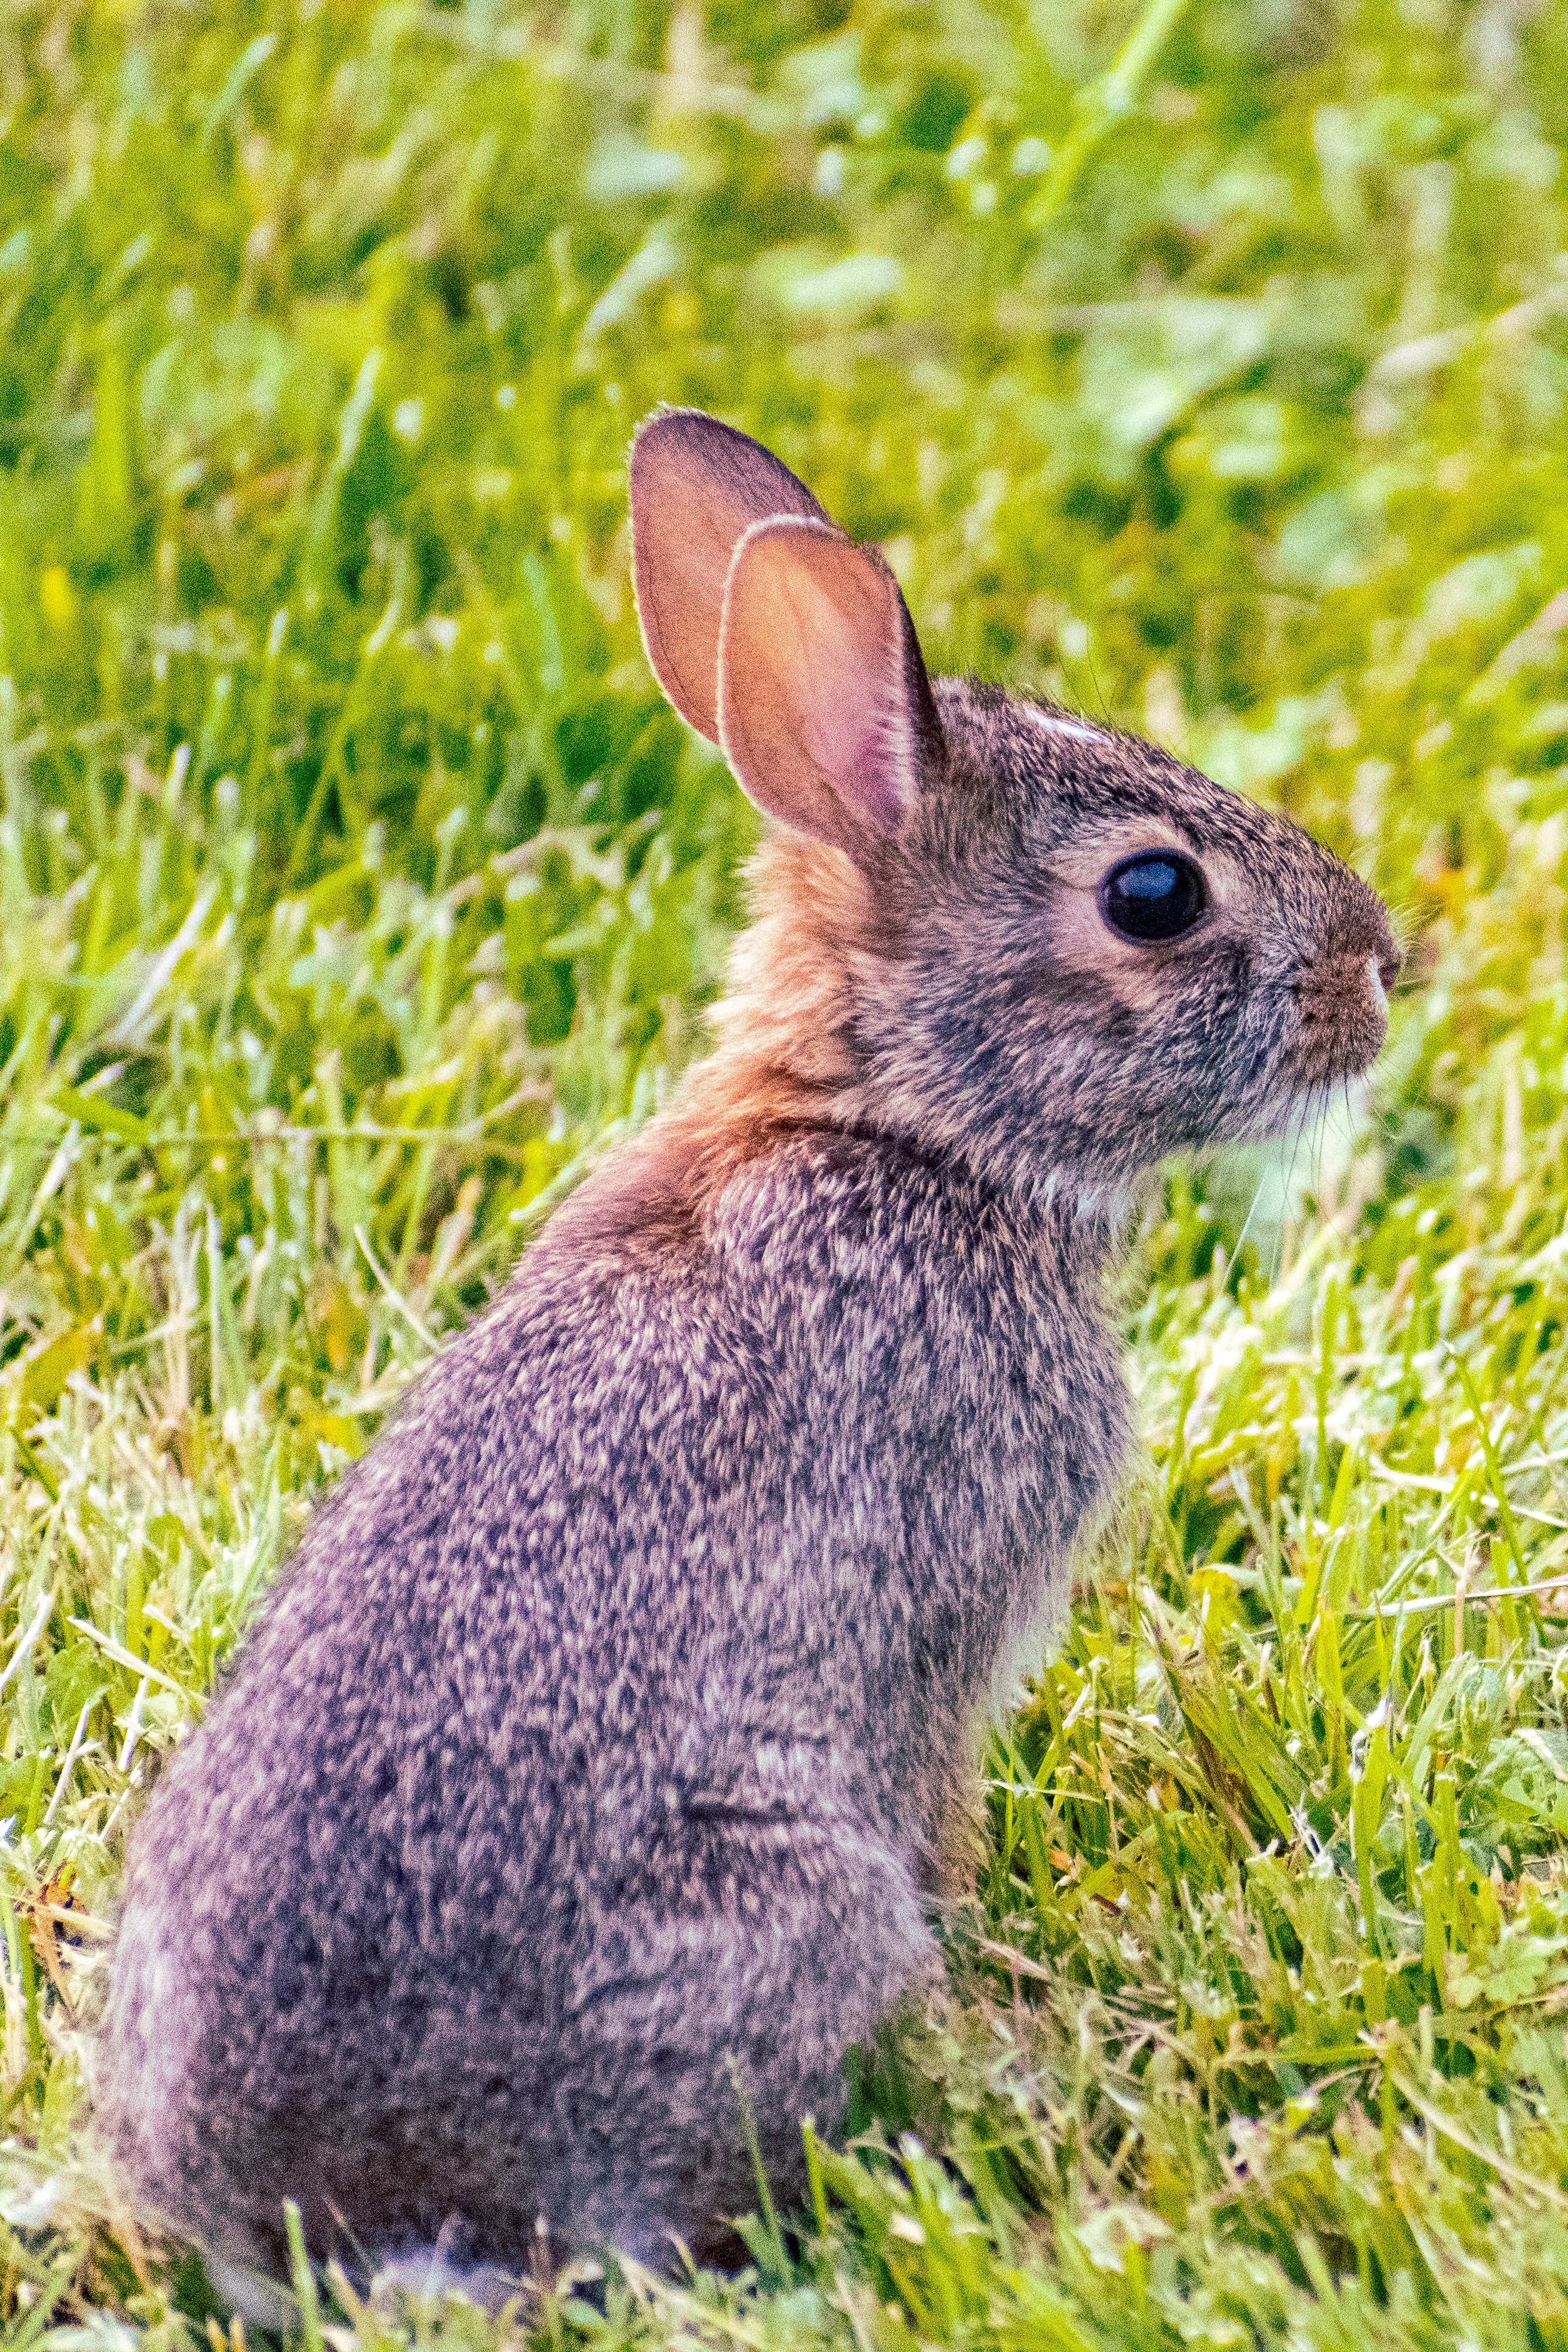 A rabbit on a background of grass